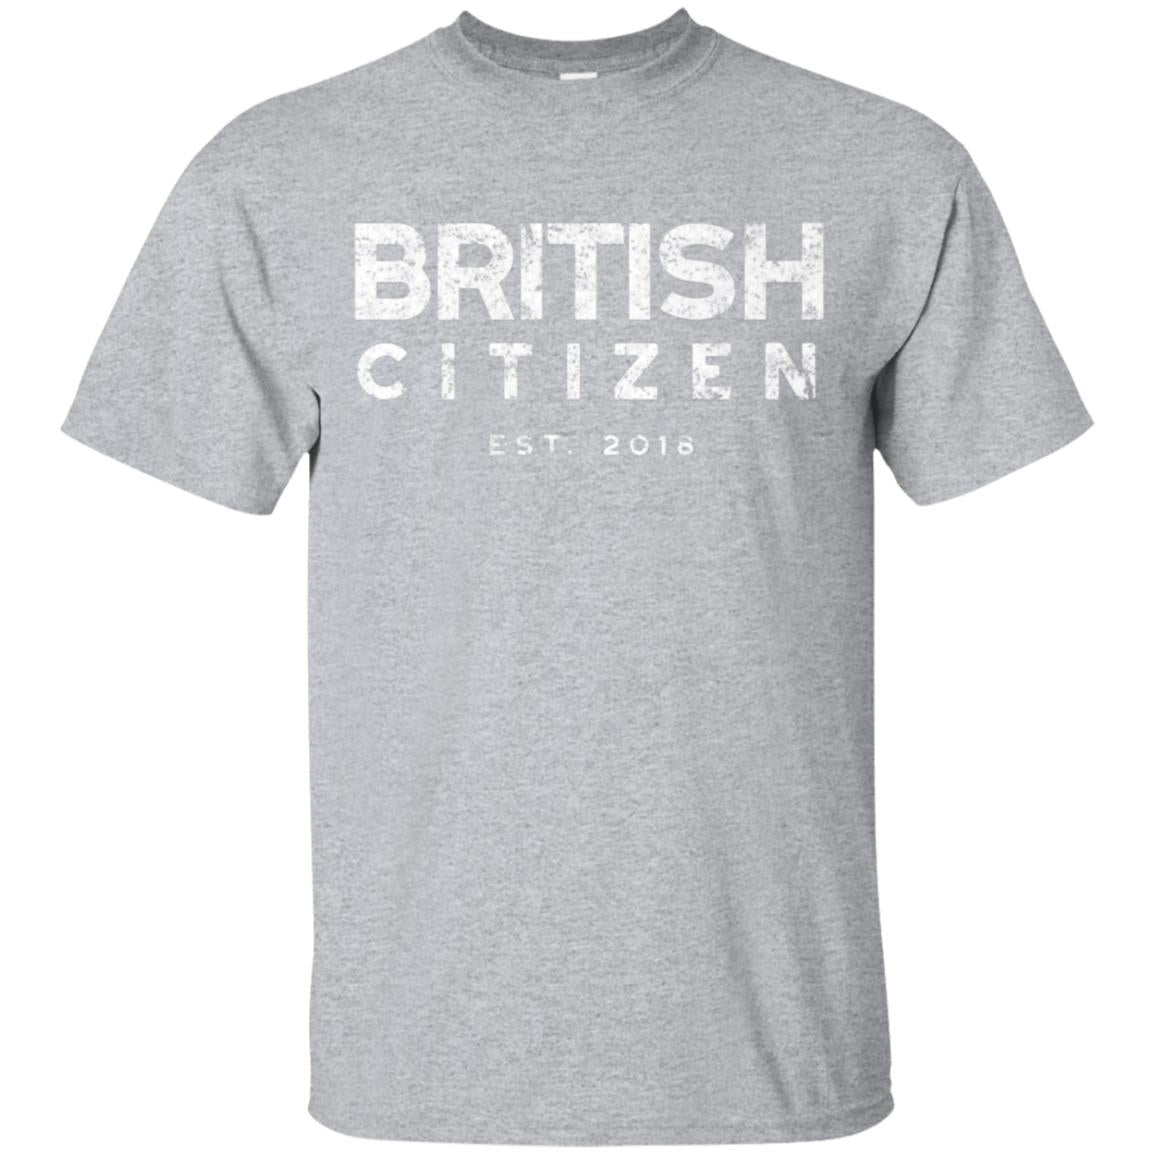 British Citizenship t-shirt, New Citizen Gifts 2018 99promocode